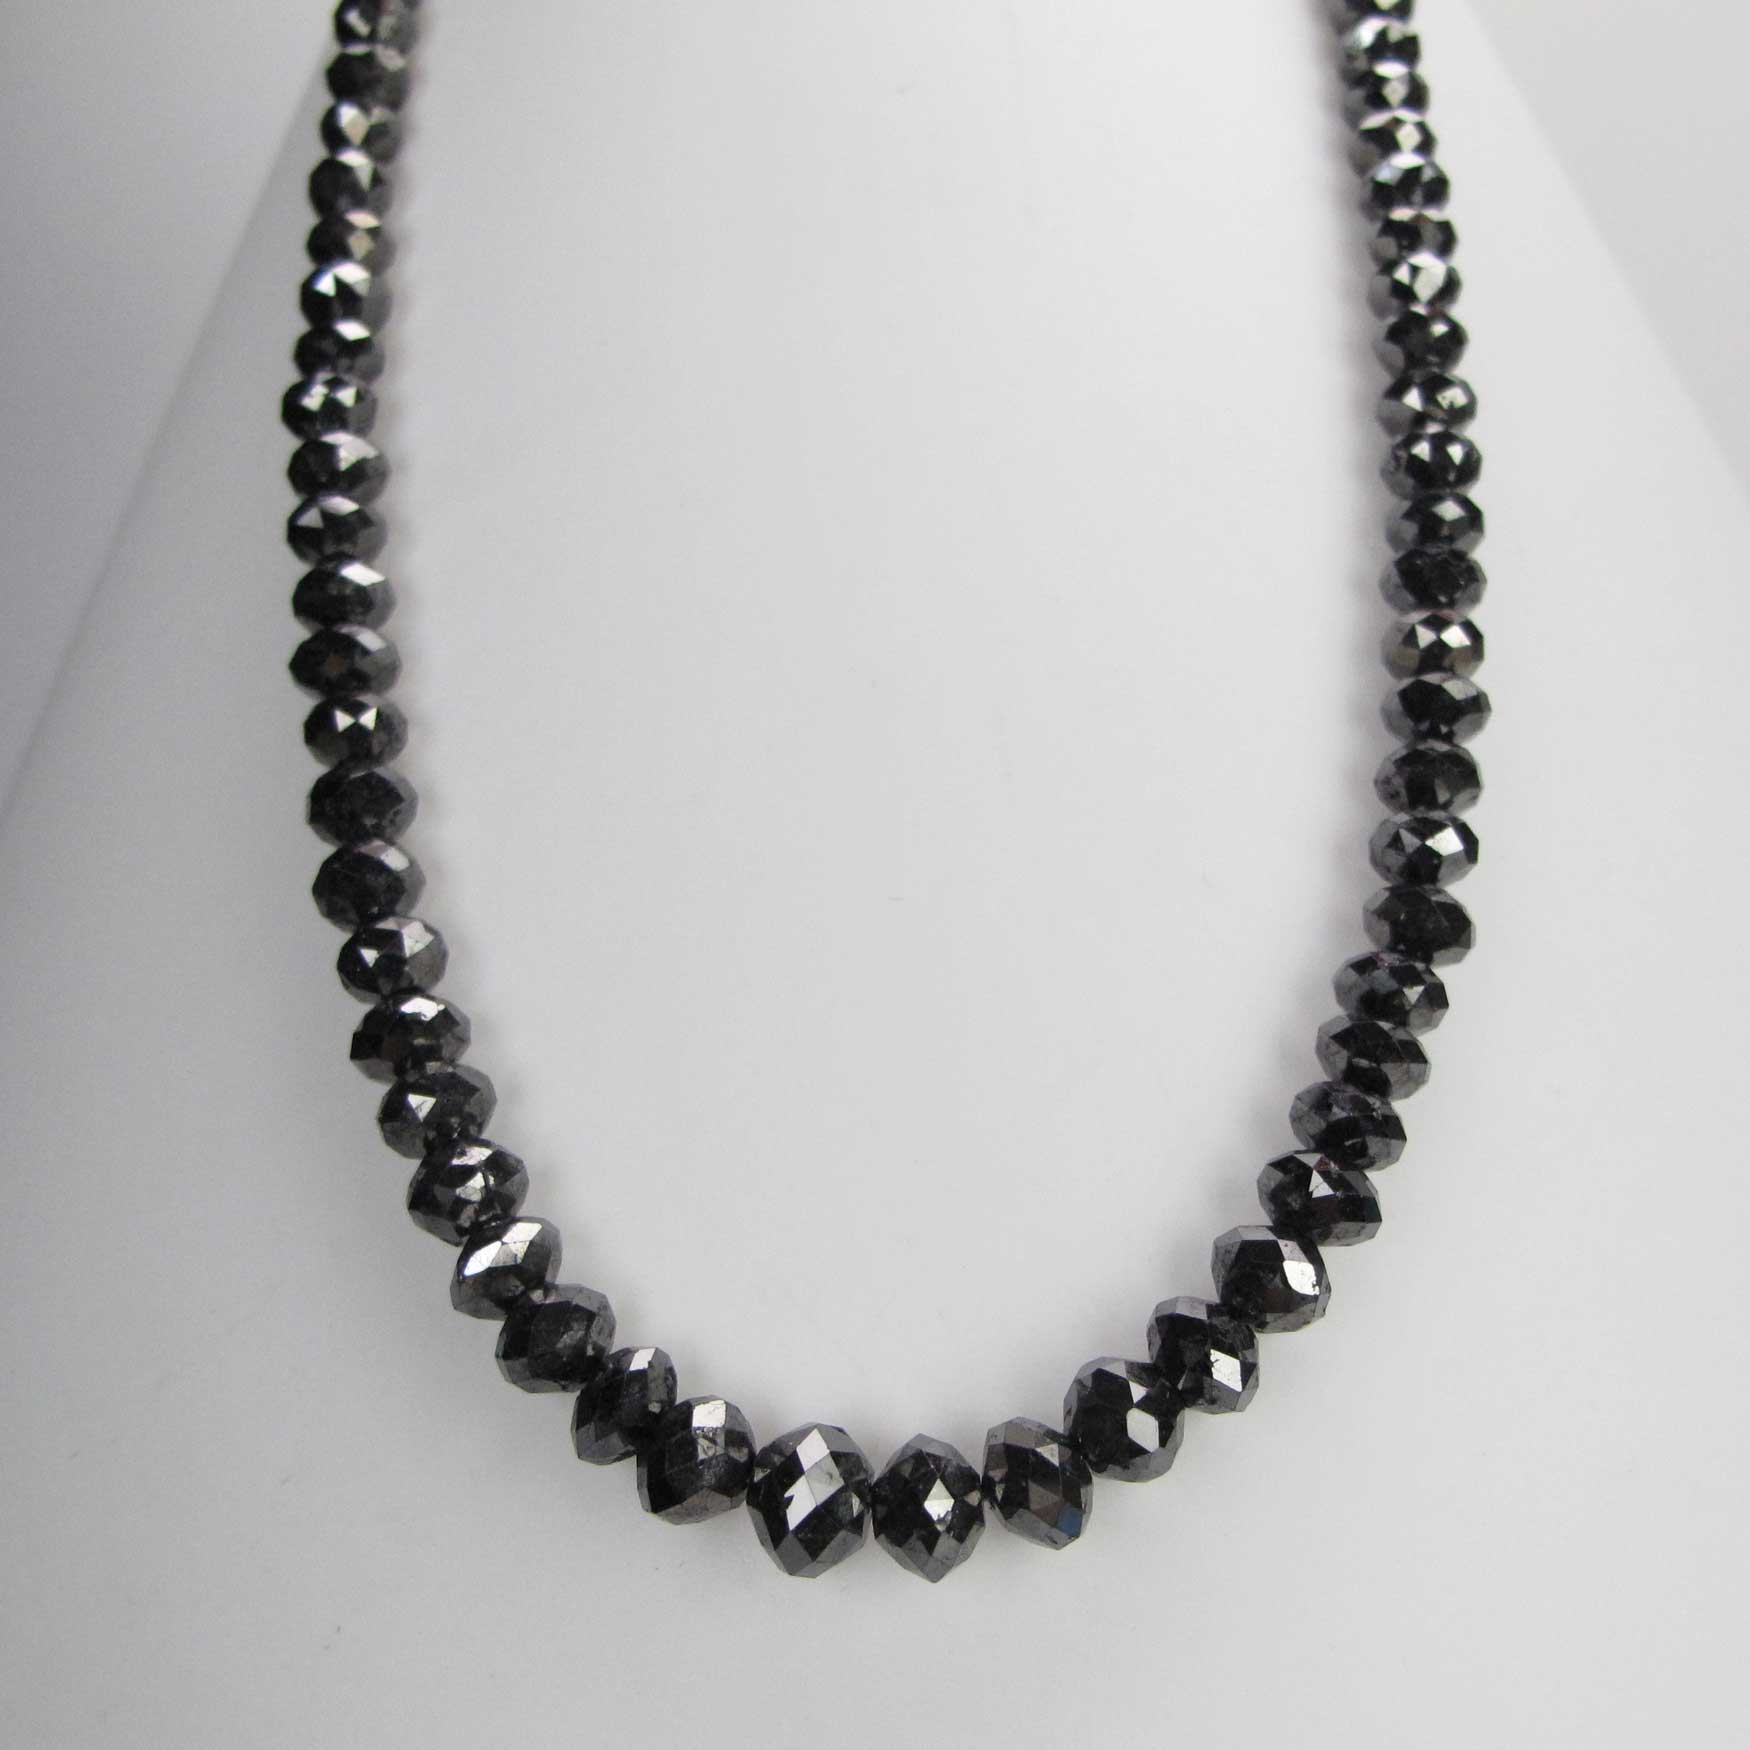 domino ciondolo diamante orafa pendant jewelry domin diamond black and palladium en nero palladio necklace